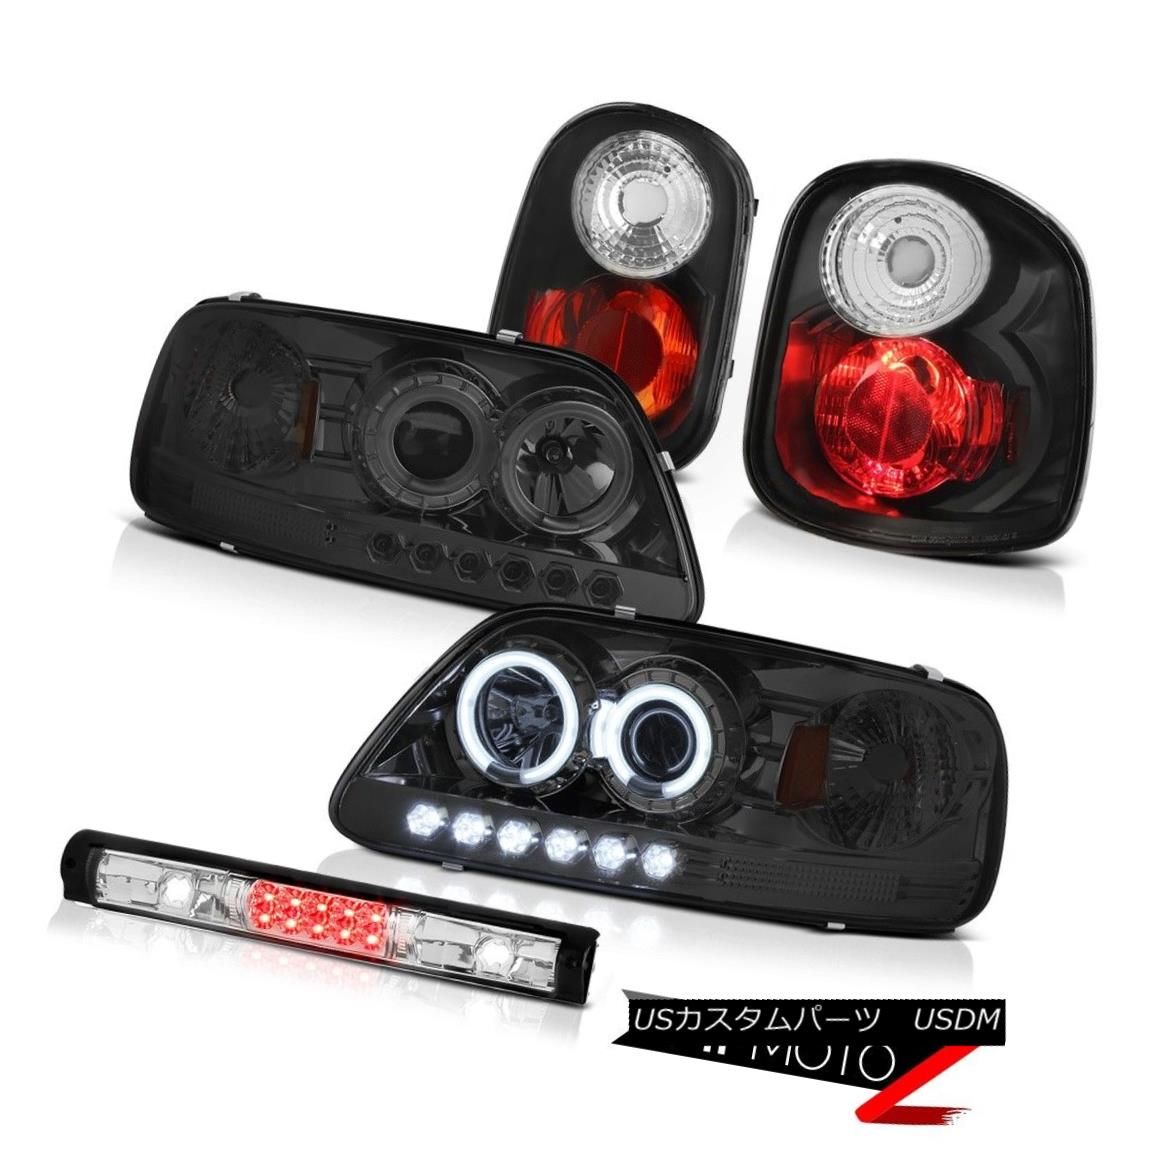 ヘッドライト BRIGHT CCFL Halo Headlamp Signal Brake Roof Stop LED 97-00 F150 Flareside Lariat BRIGHT CCFLハローヘッドランプ信号ブレーキルーフストップLED 97-00 F150 Flareside Lariat